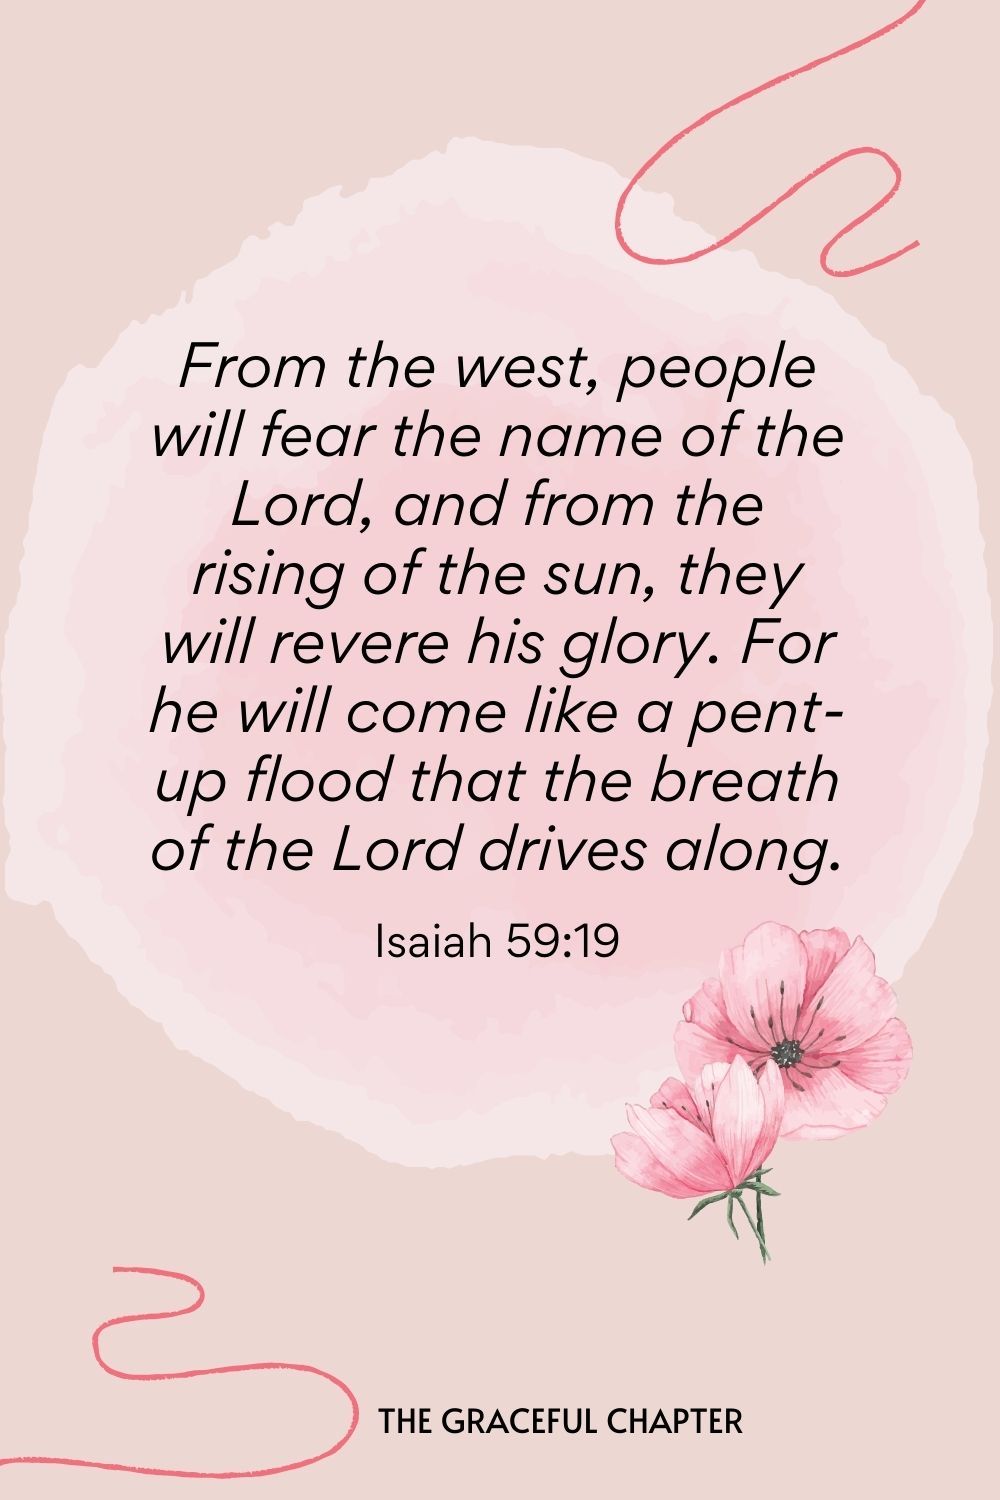 From the west, people will fear the name of the Lord, and from the rising of the sun, they will revere his glory. For he will come like a pent-up flood that the breath of the Lord drives along. Isaiah 59:19